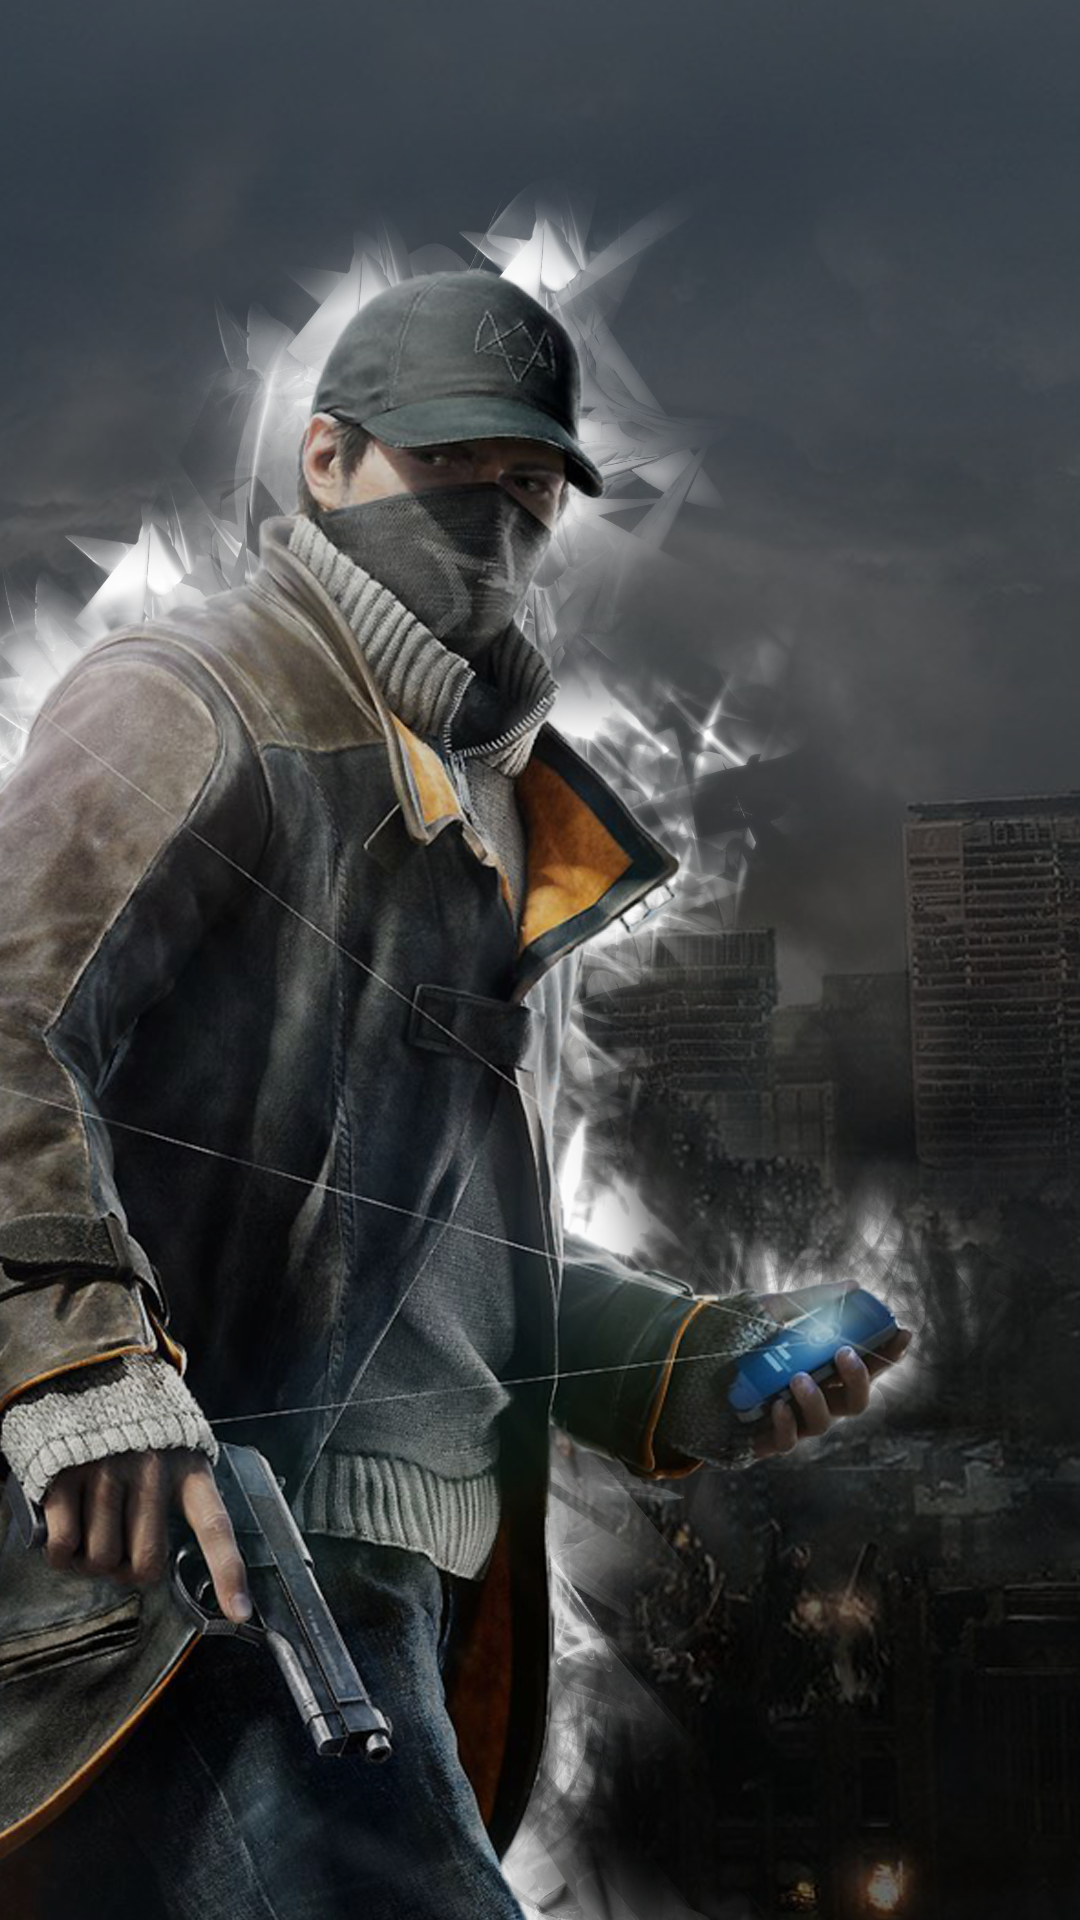 Smartphone aiden pearce fullhd wallpaper by heasheartfire for Sfondi hd smartphone